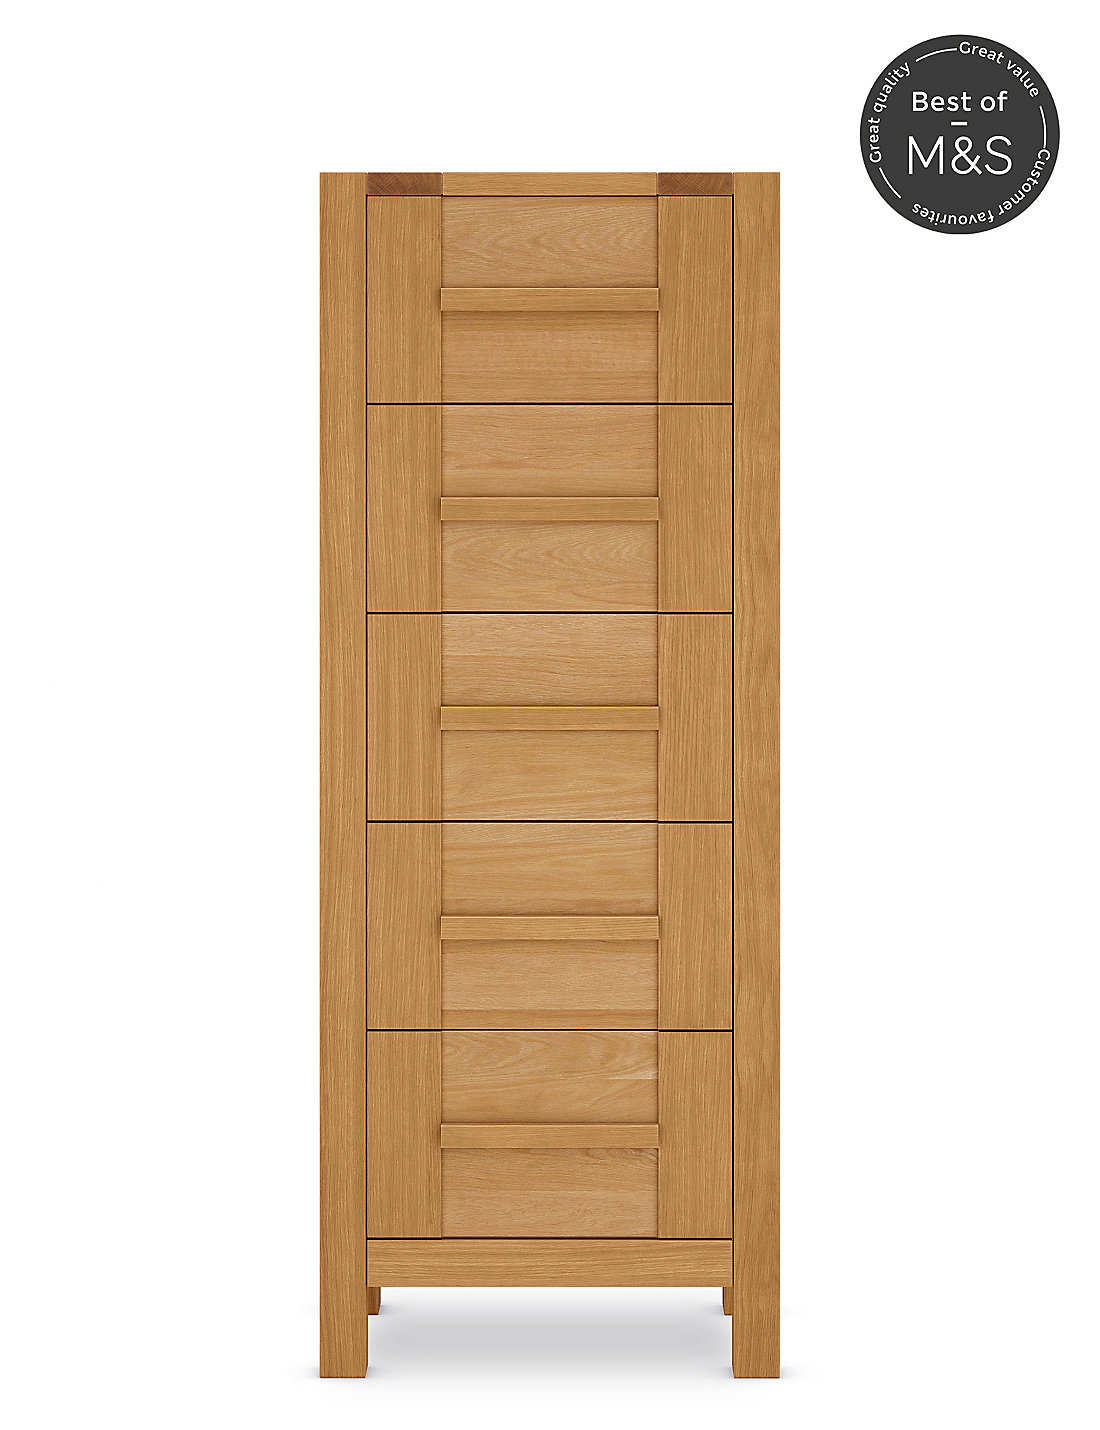 Sonoma Bedroom Furniture Sonoma Bedroom Furniture Sonoma Wardrobes Beds Ms